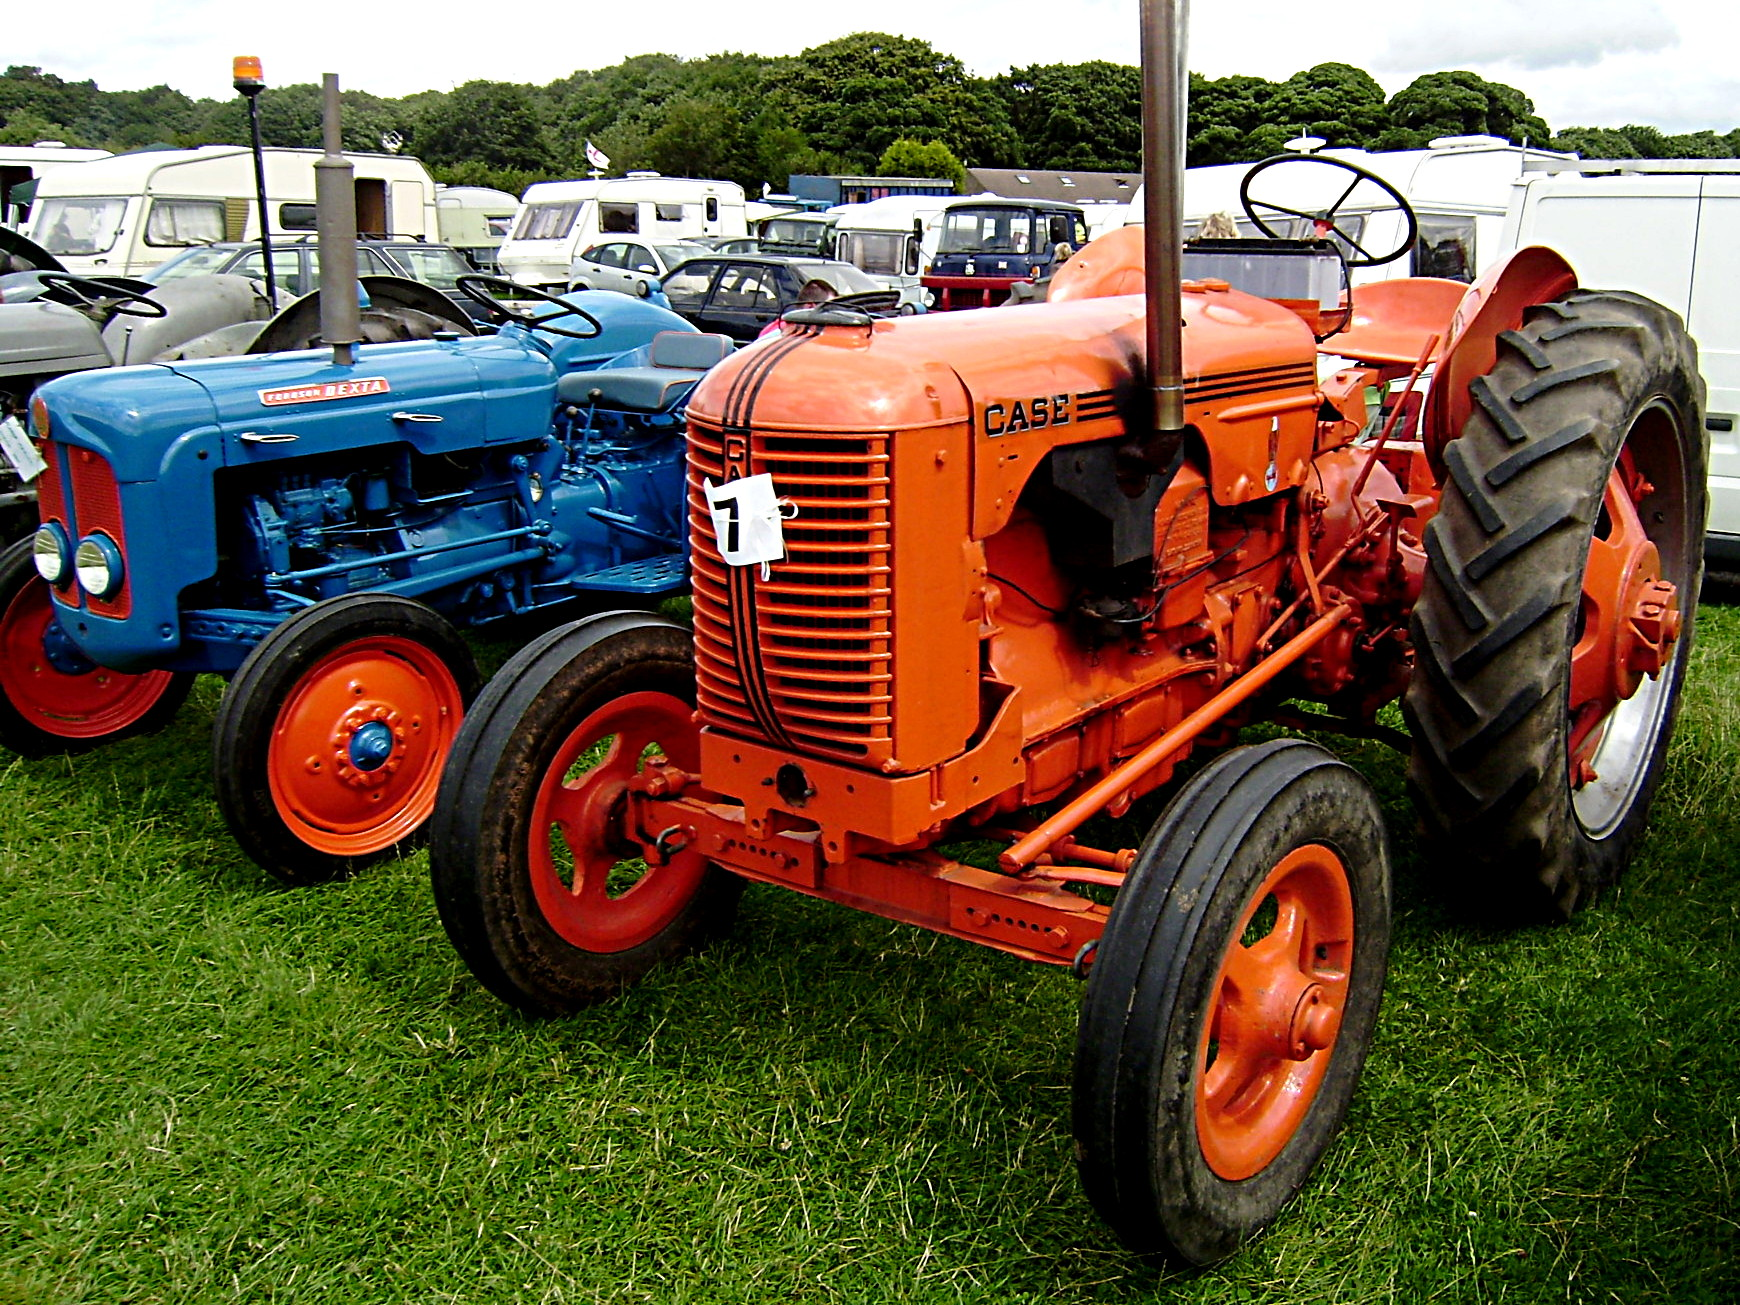 The Liveried Tractor – Restless Device